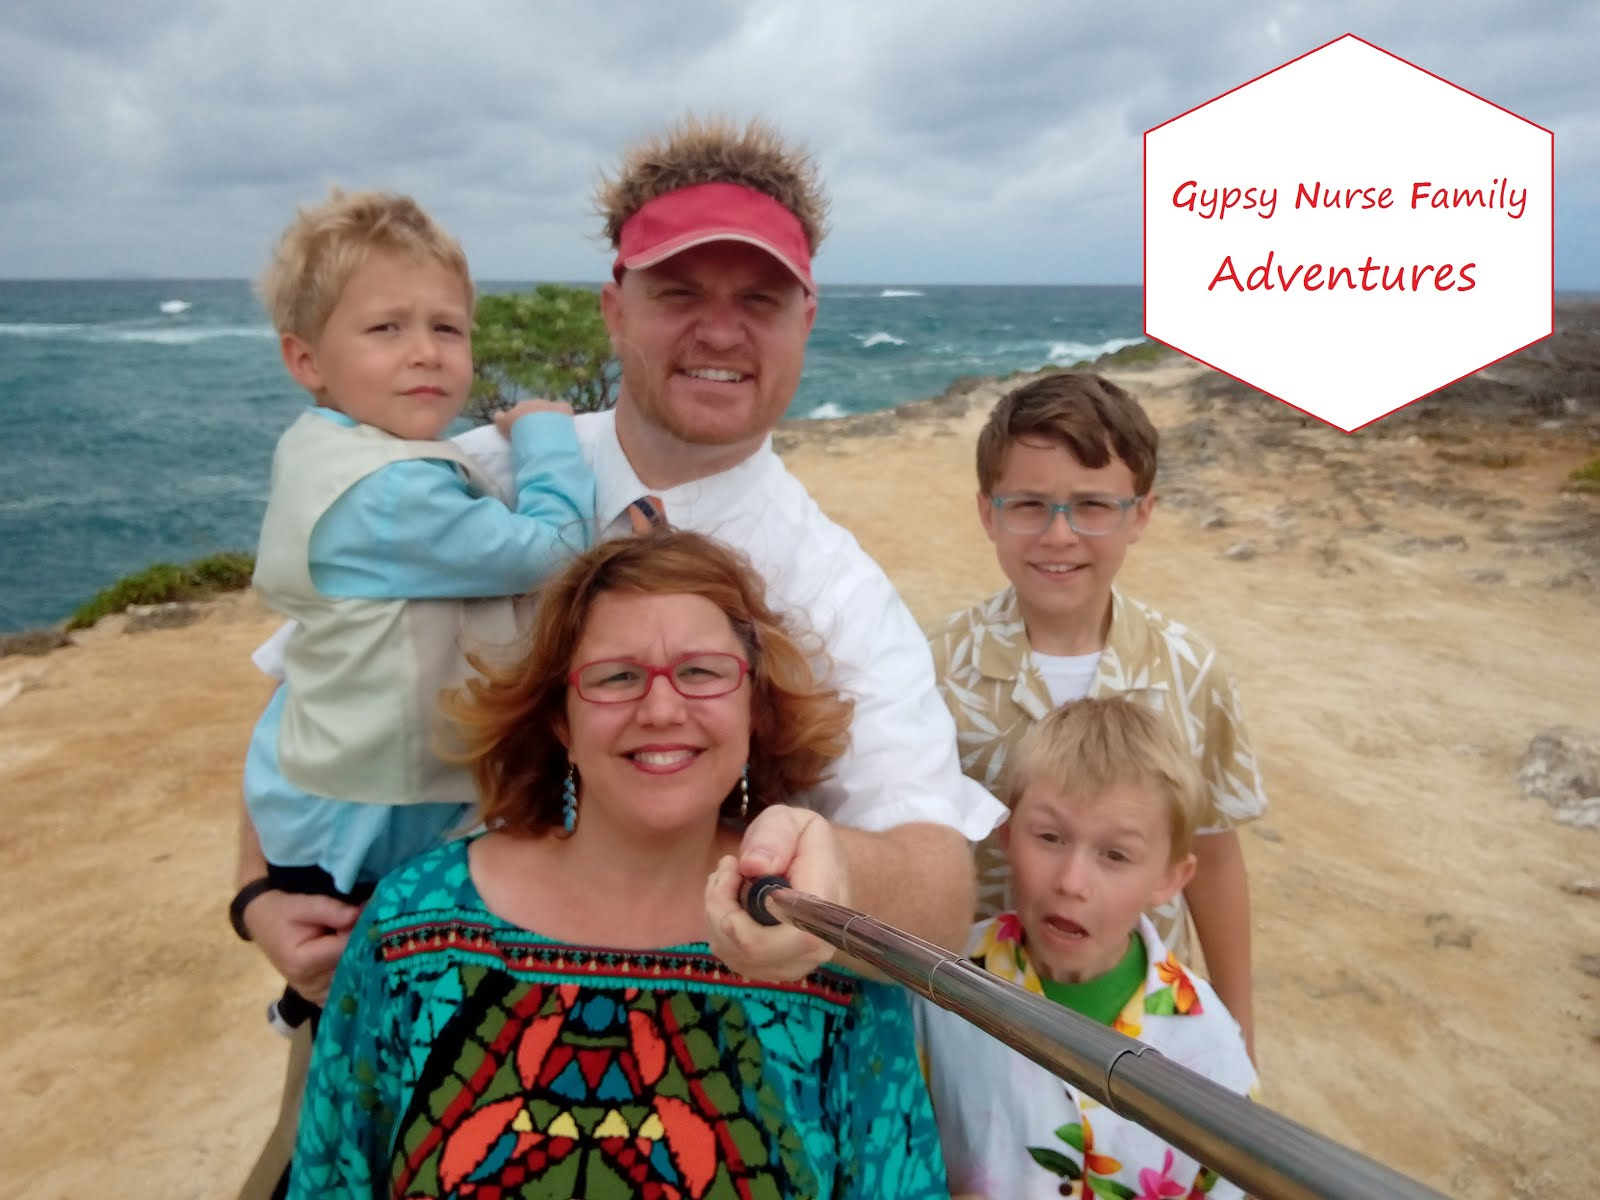 Follow Our Gypsy Nurse Family Adventure